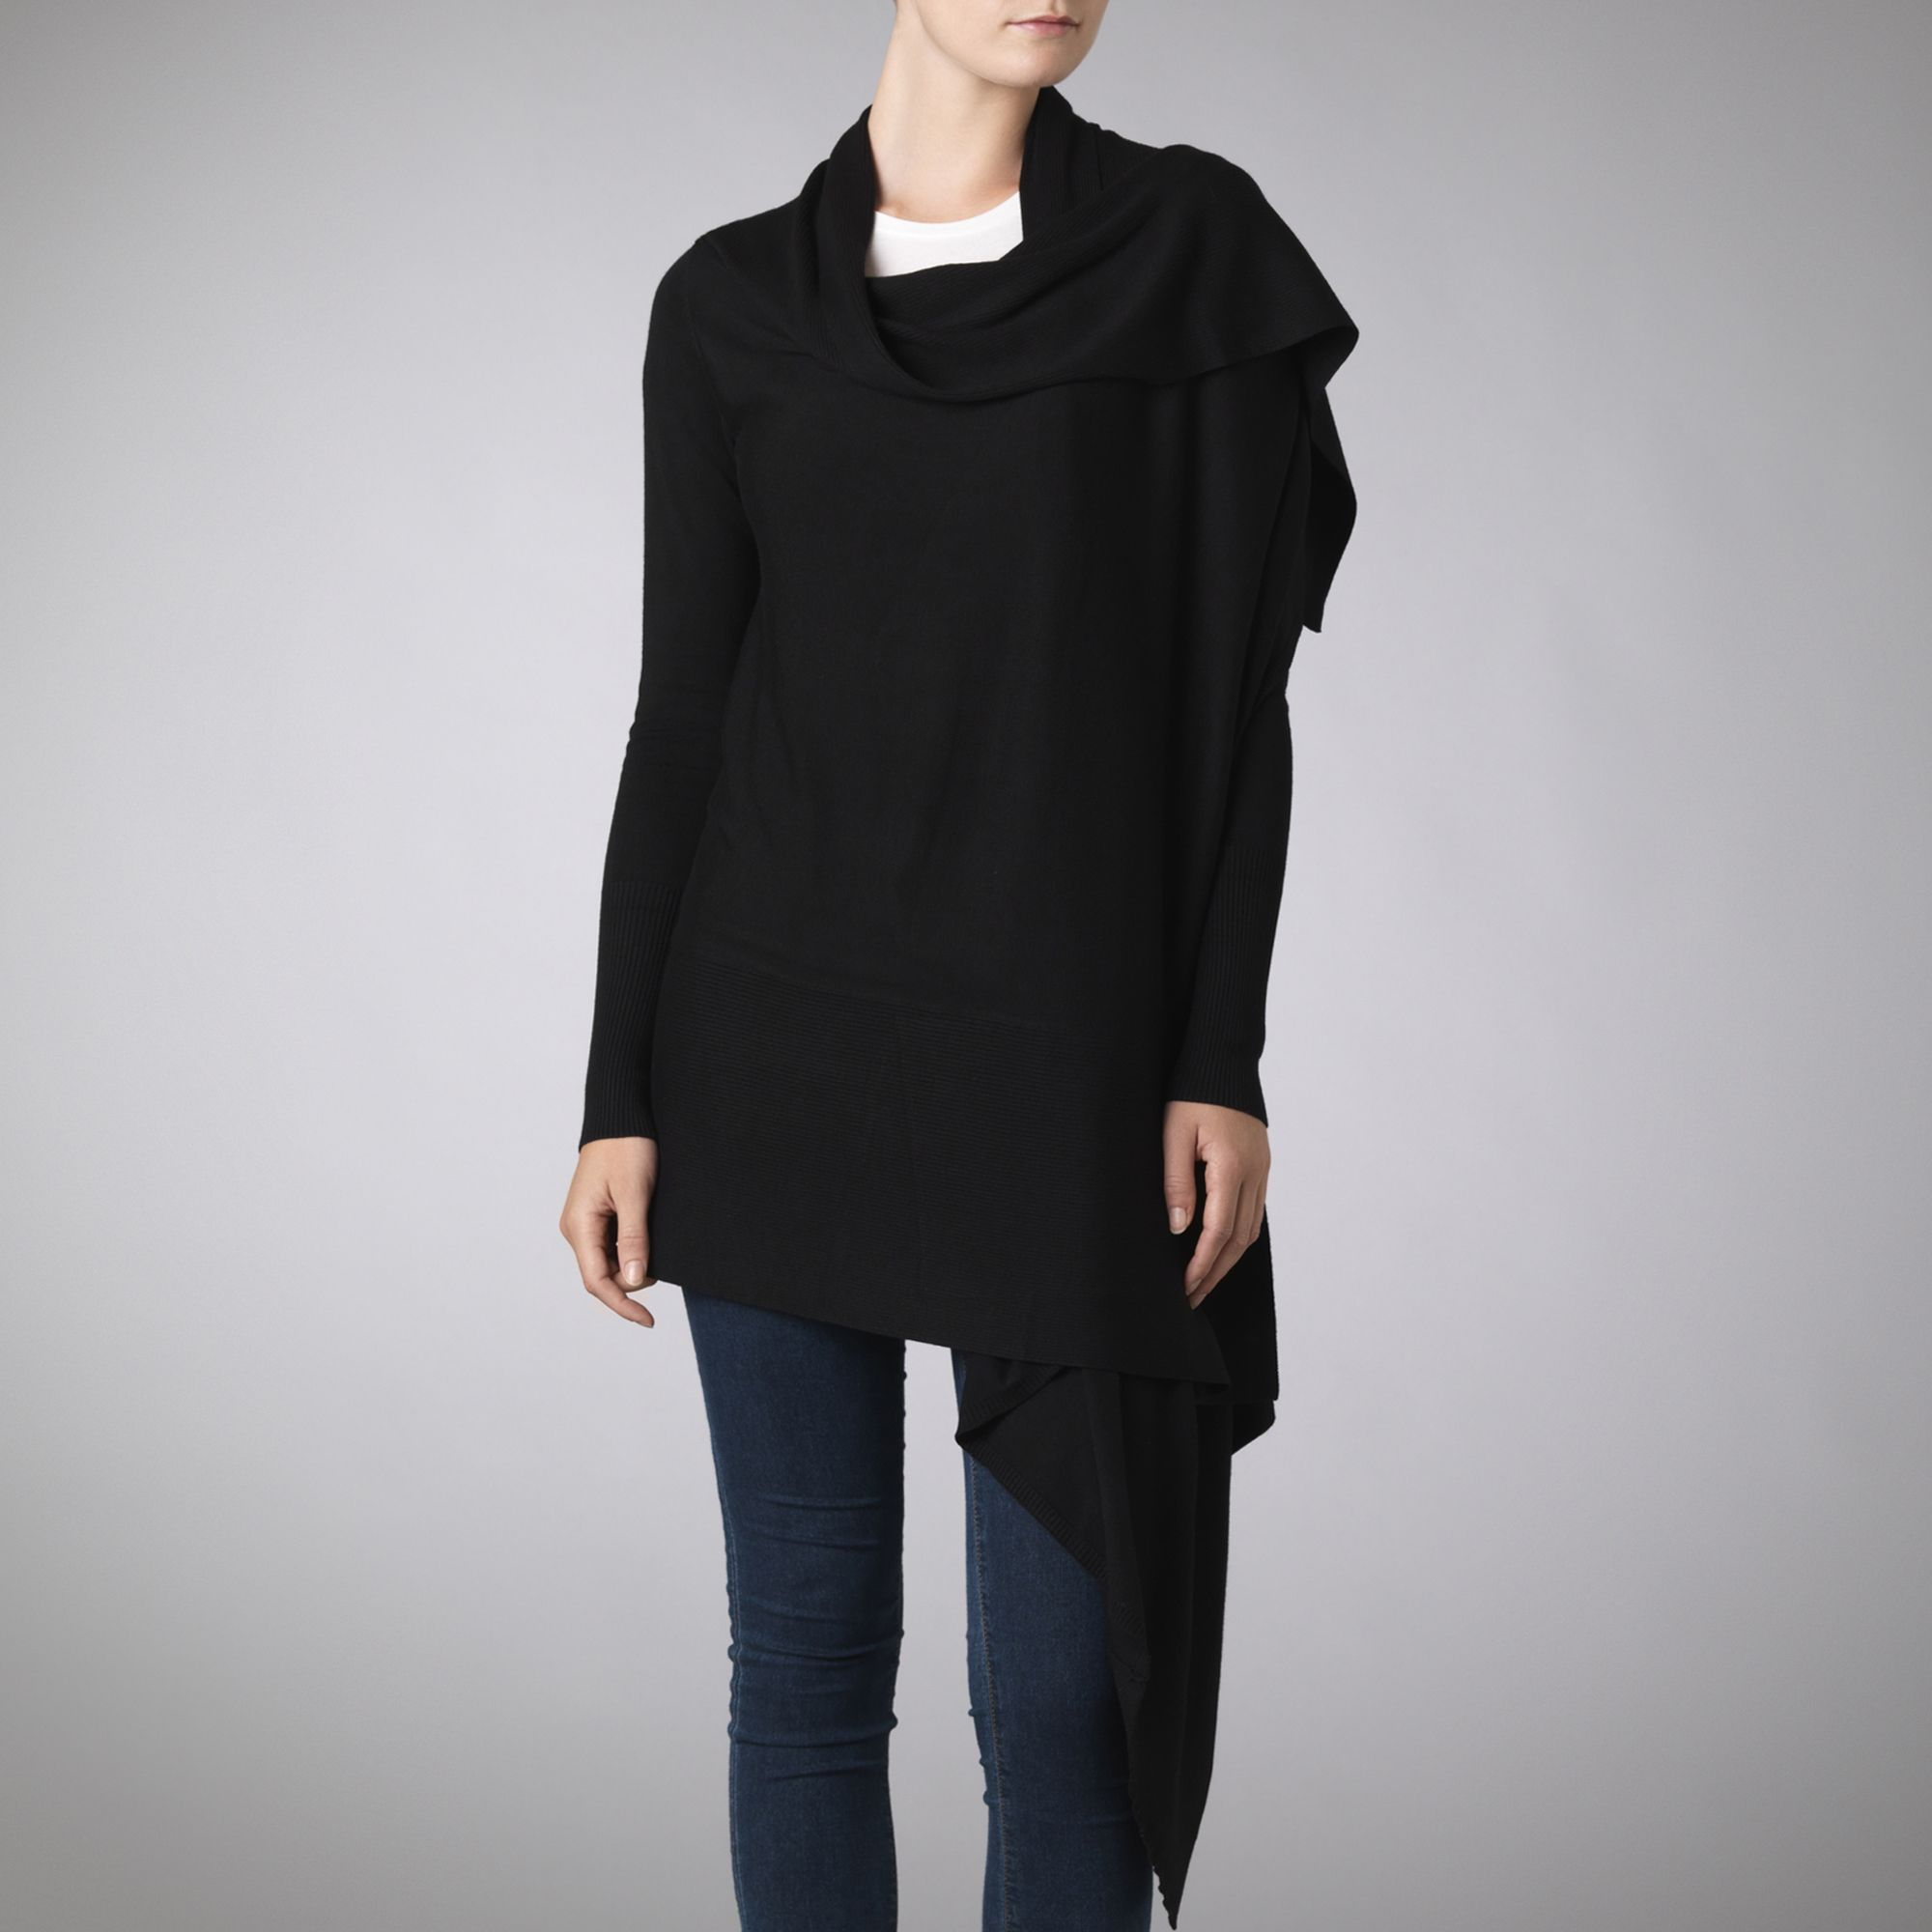 1df93367c3de10 Ted Baker Wrap Cardigan in Black - Lyst